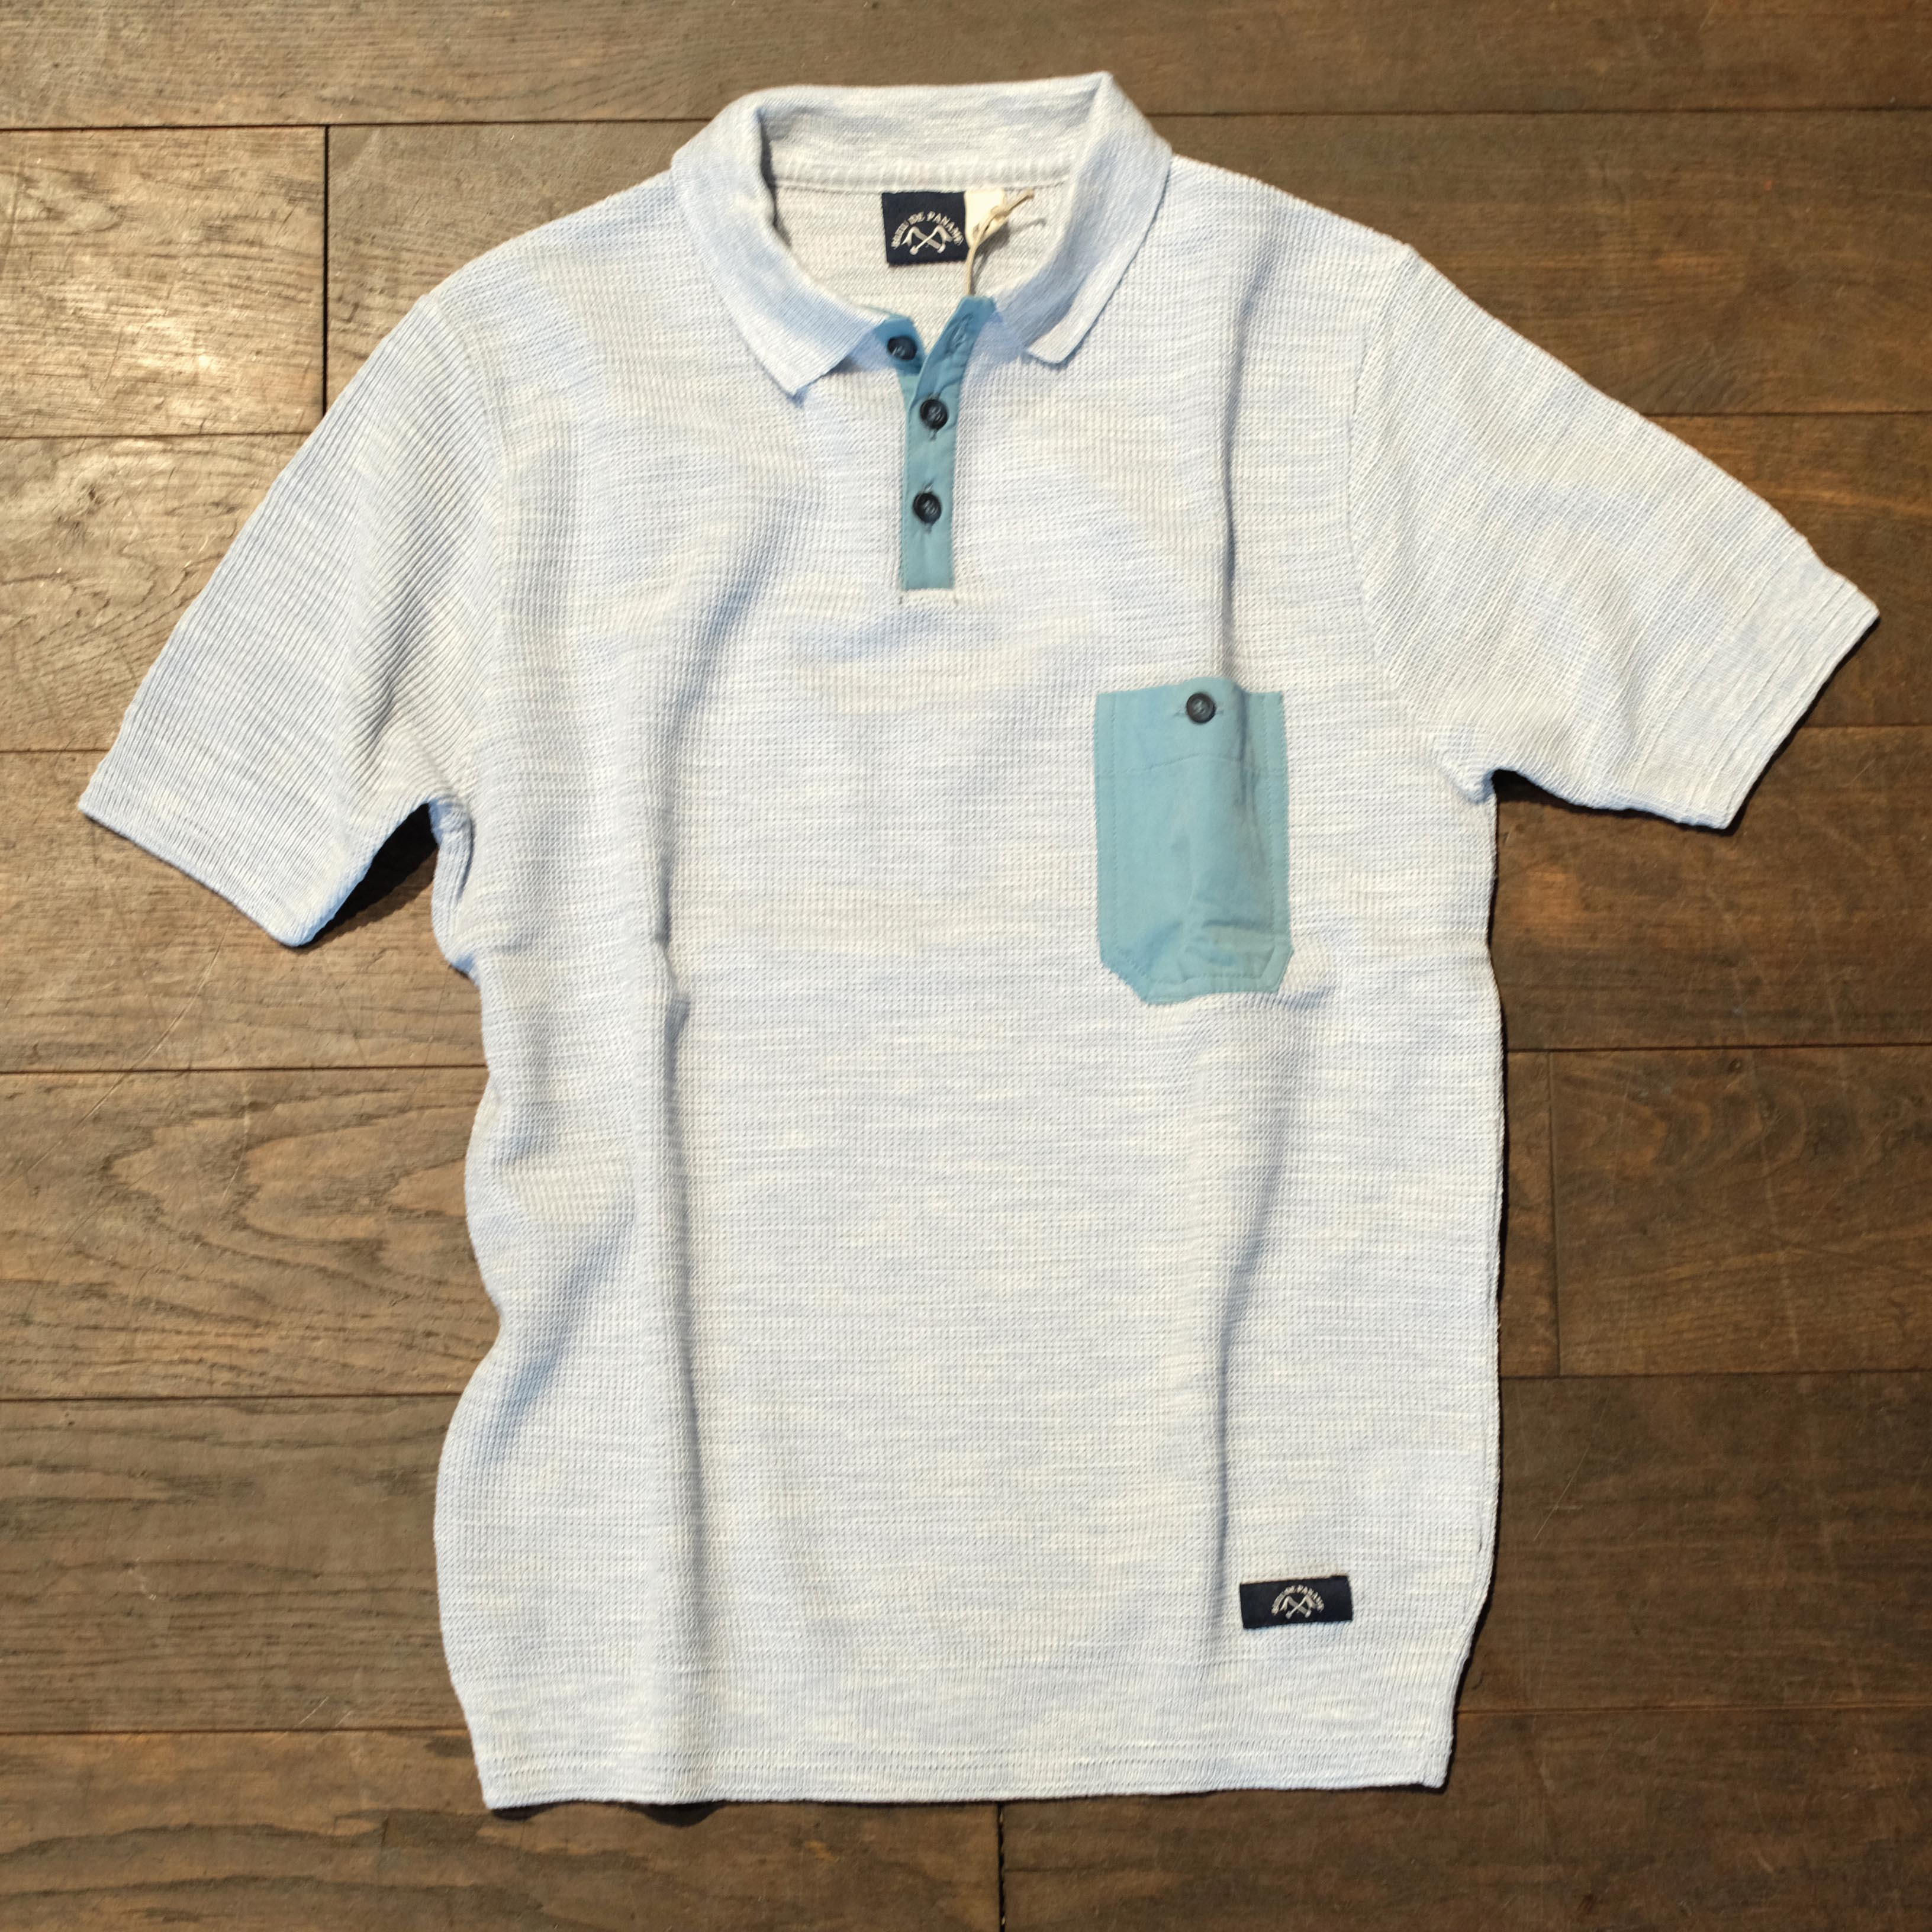 bleuedepaname-polo-shirt-sommer-01